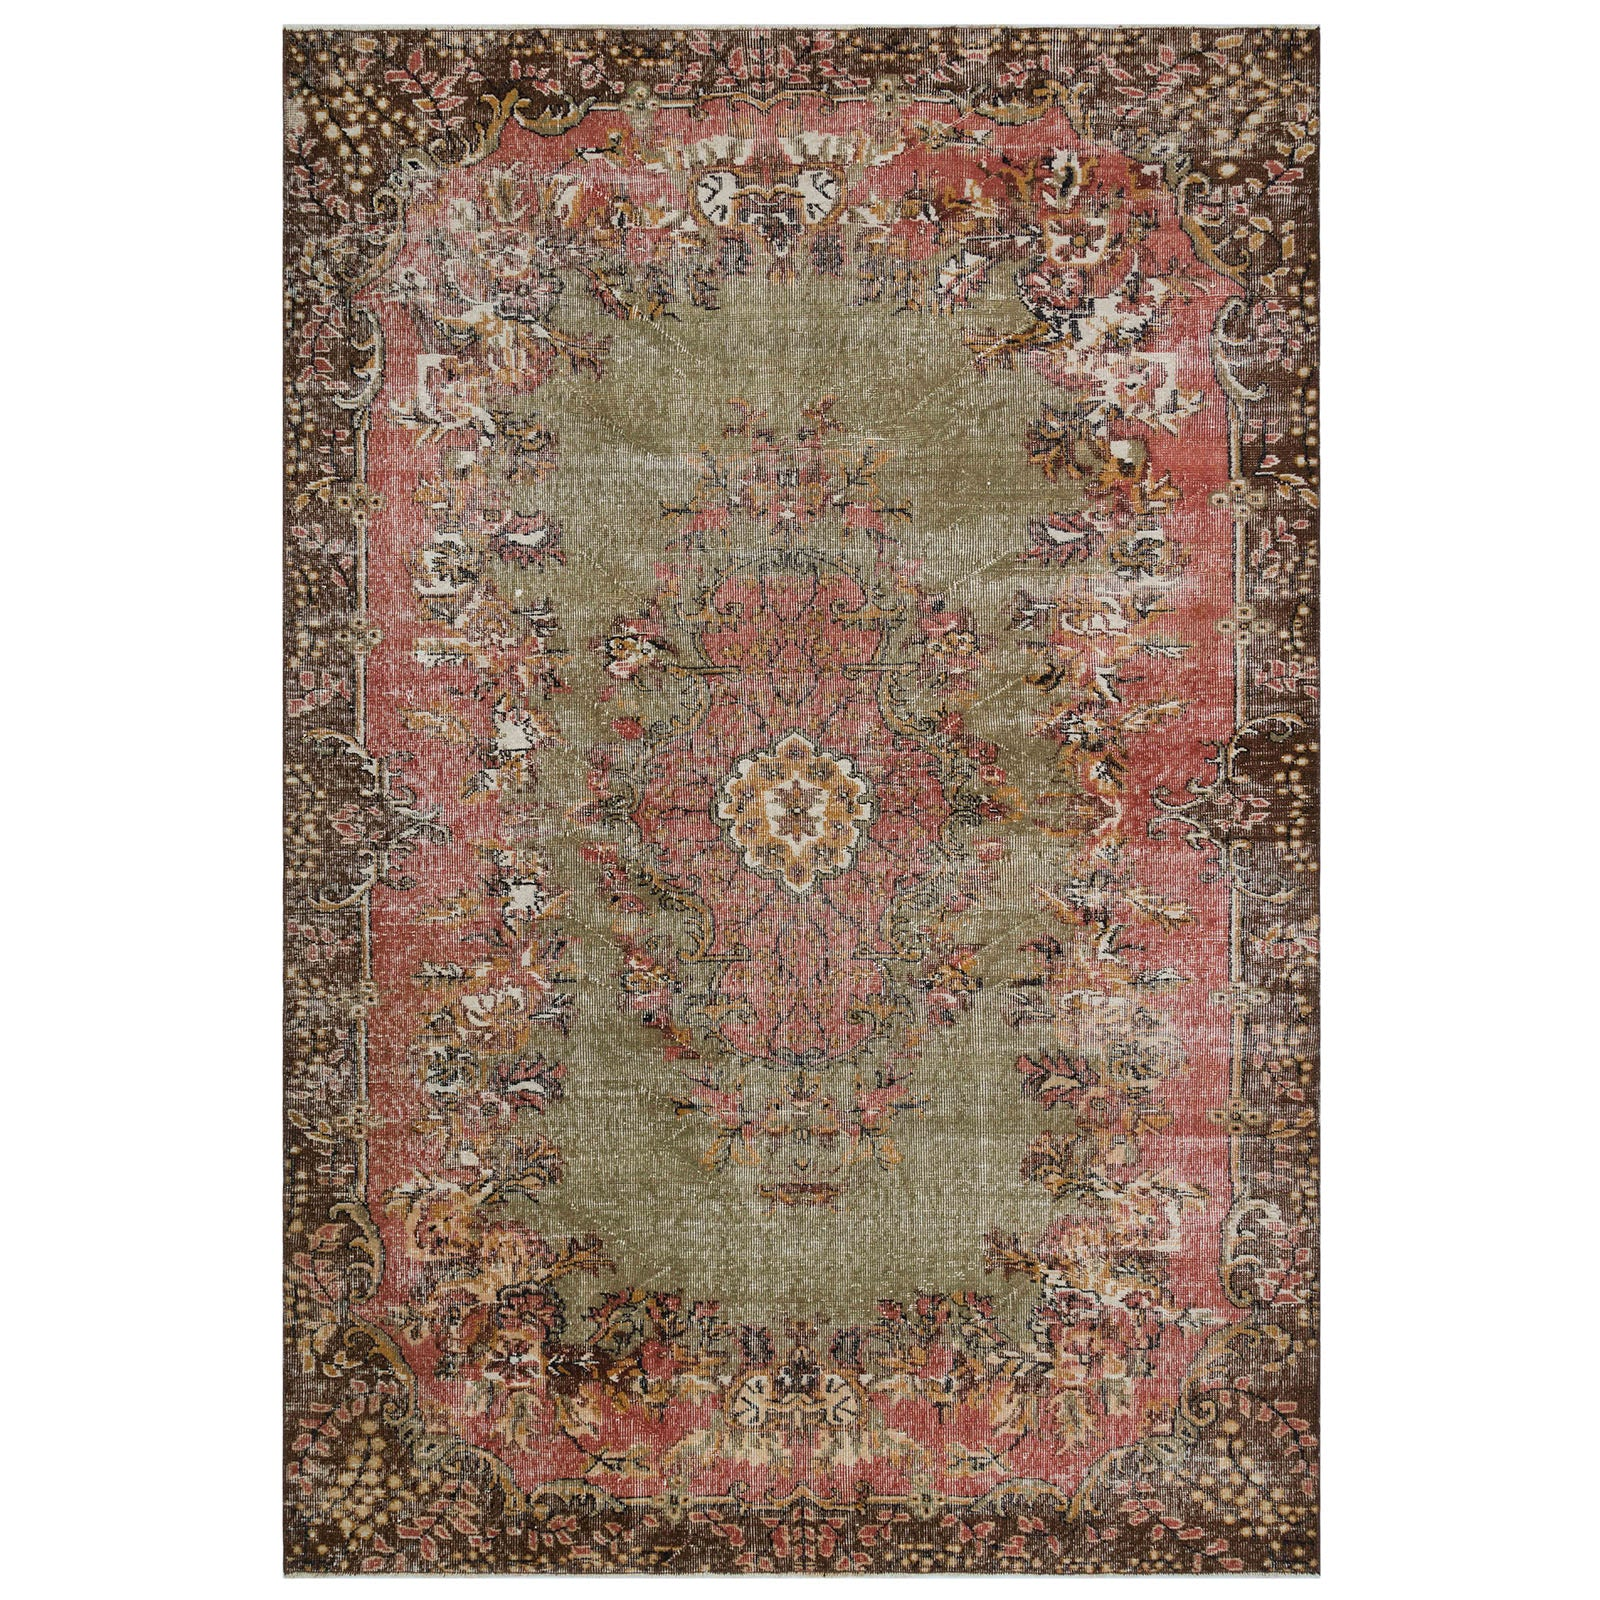 Hali 198X294  CM Bursa Handmade over dyed rug  1715